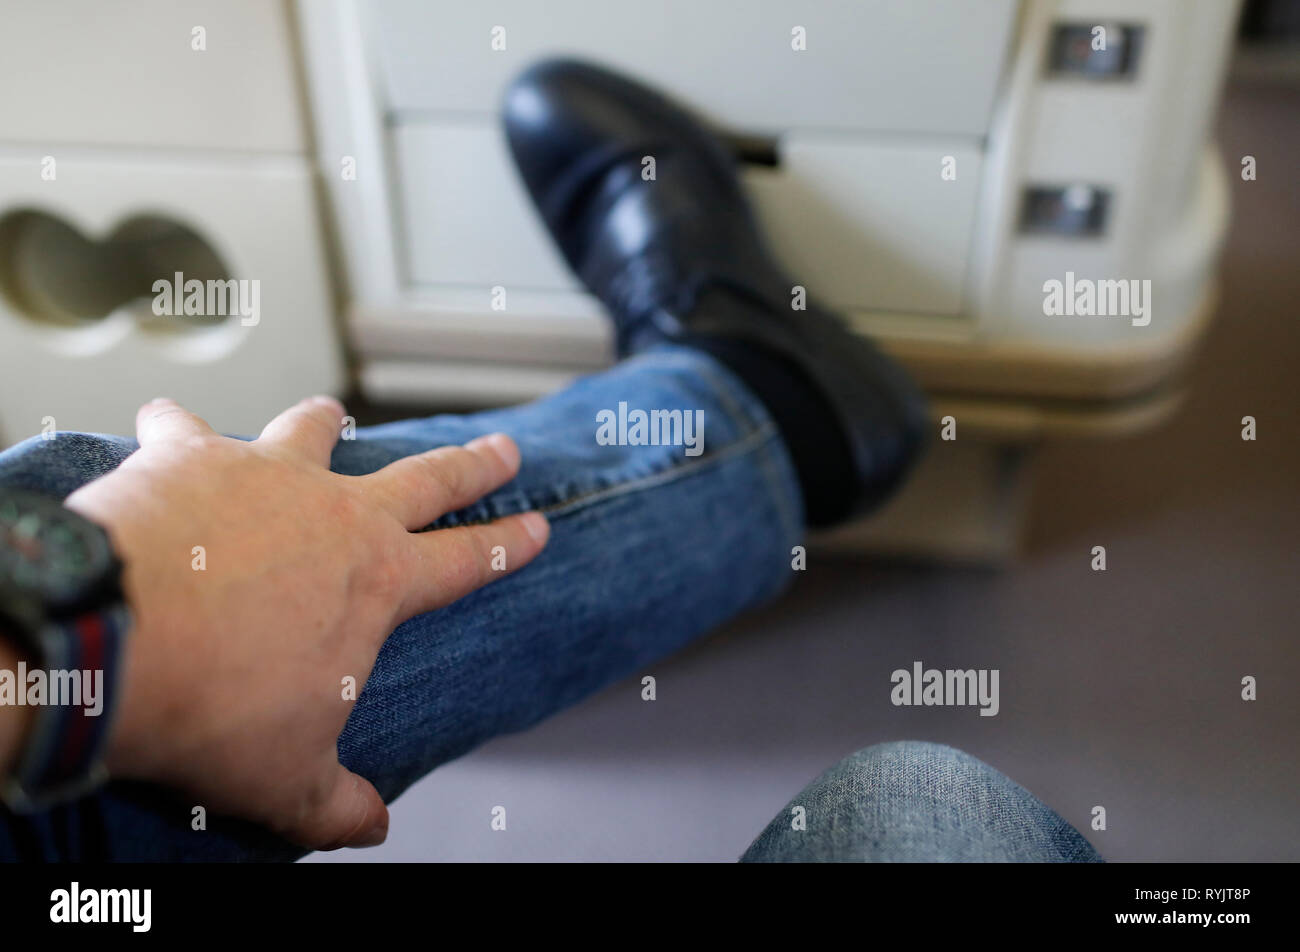 Airplane. Phlebitis. Traveling more than eight hours by palne could be at risk for blood clots. Singapore. - Stock Image